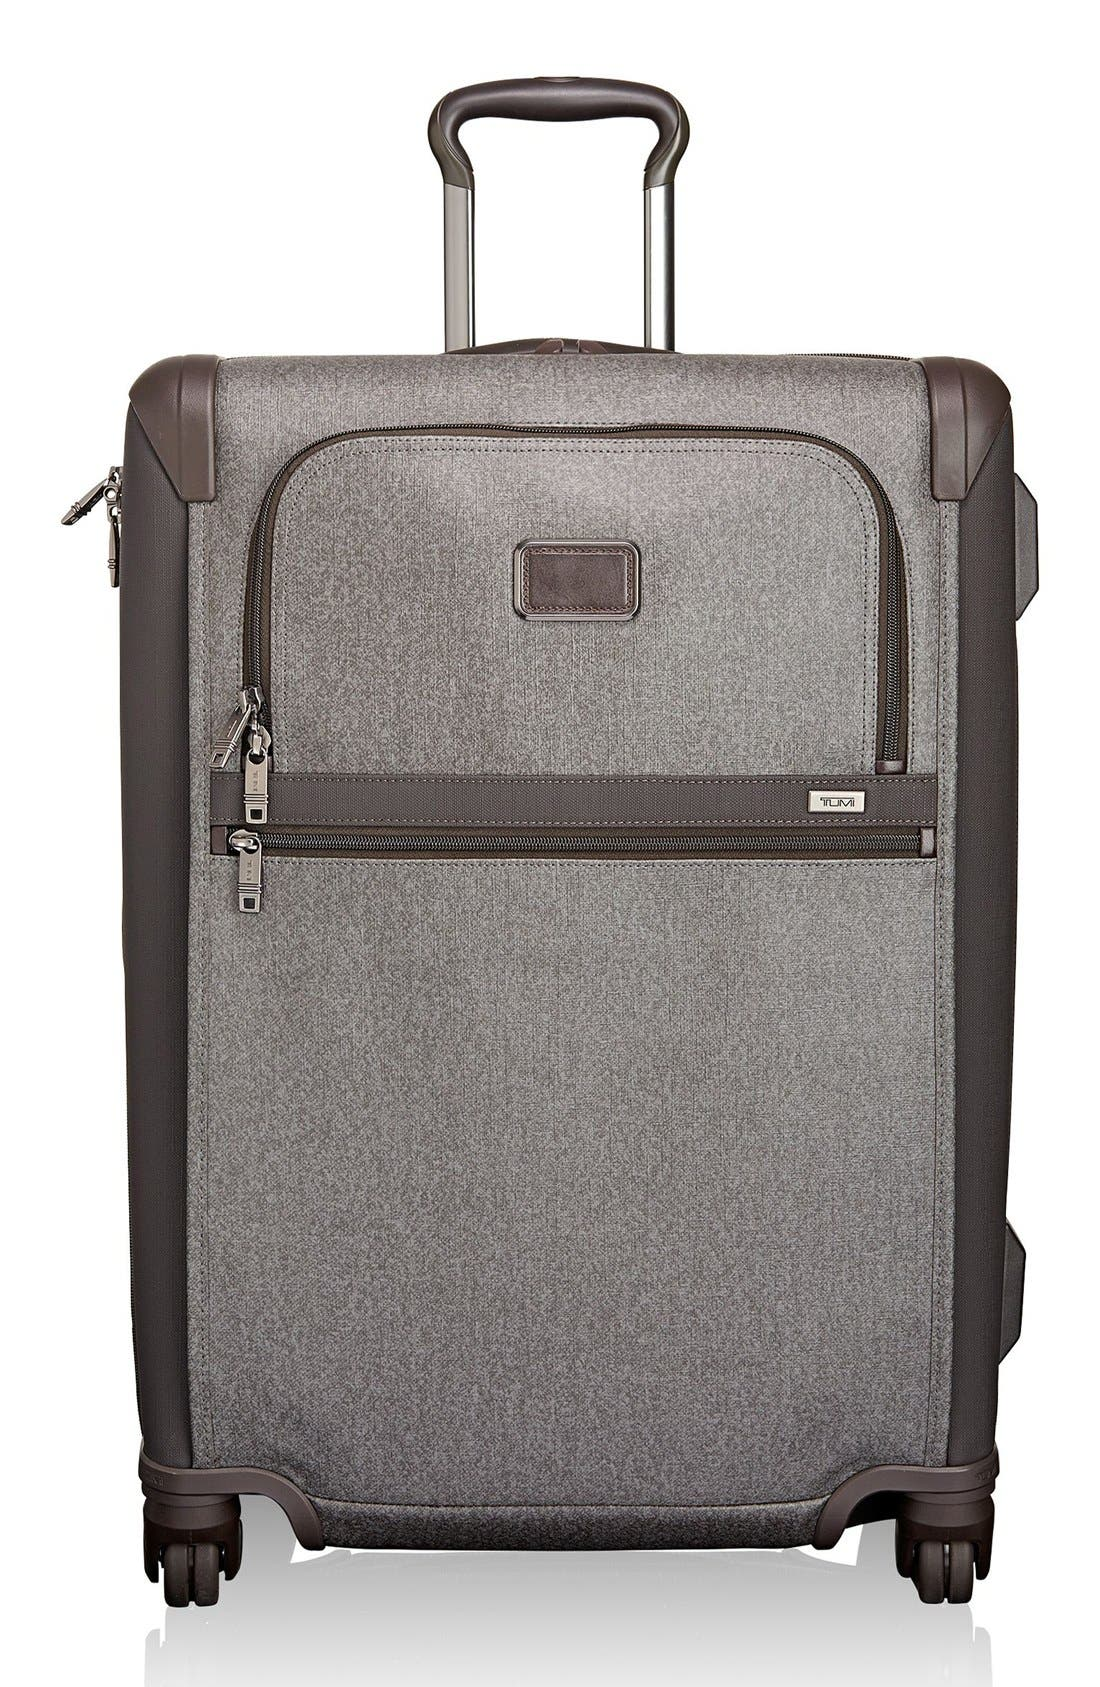 Tumi 'Alpha 2' Short Trip Rolling Four Wheel Packing Case (26 Inch)